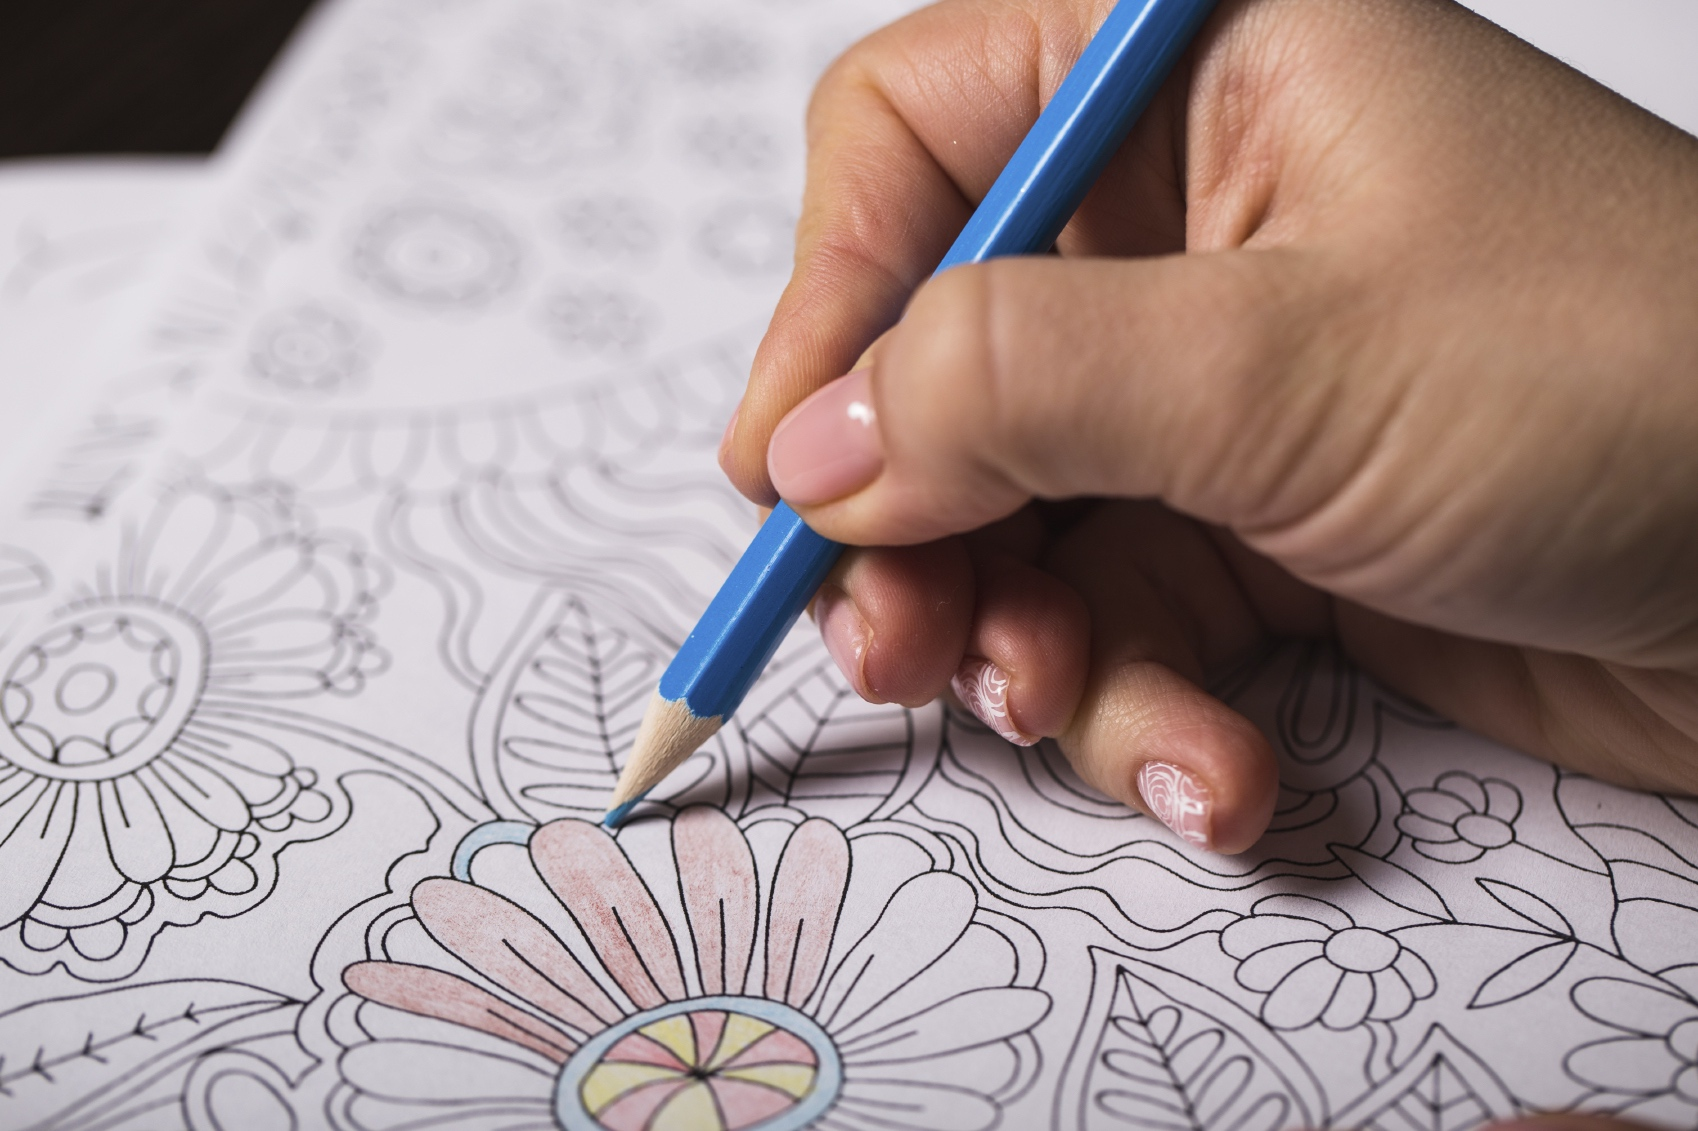 coloring therapy mandalas pine rest activity therapy